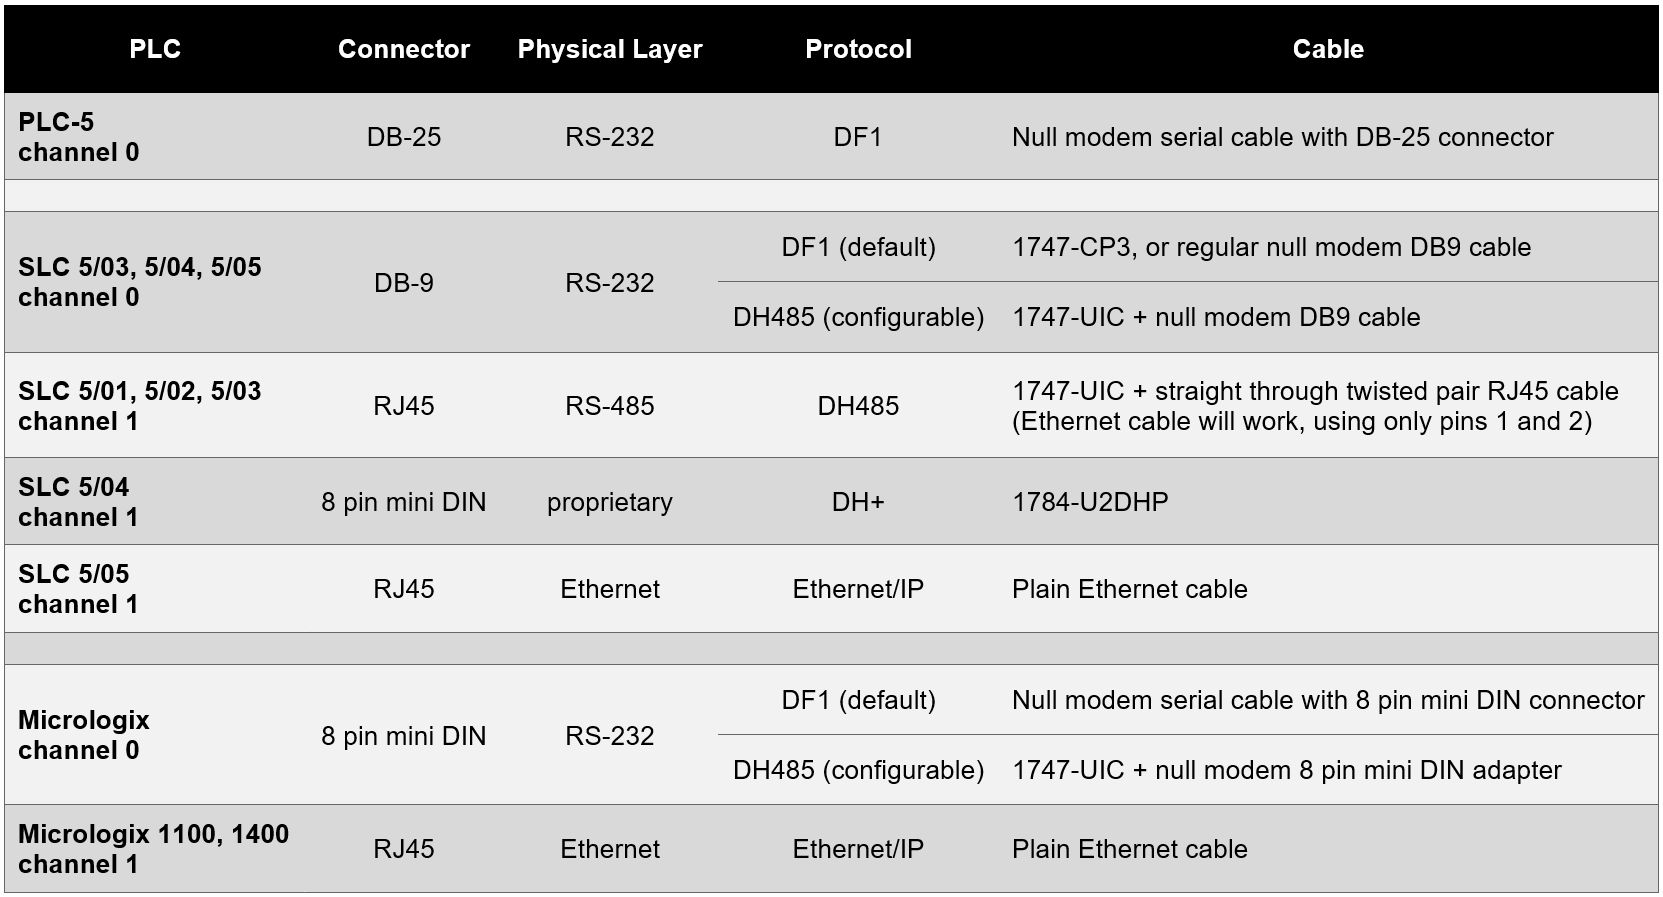 Summary of Allen-Bradley PLC Cables and Protocols